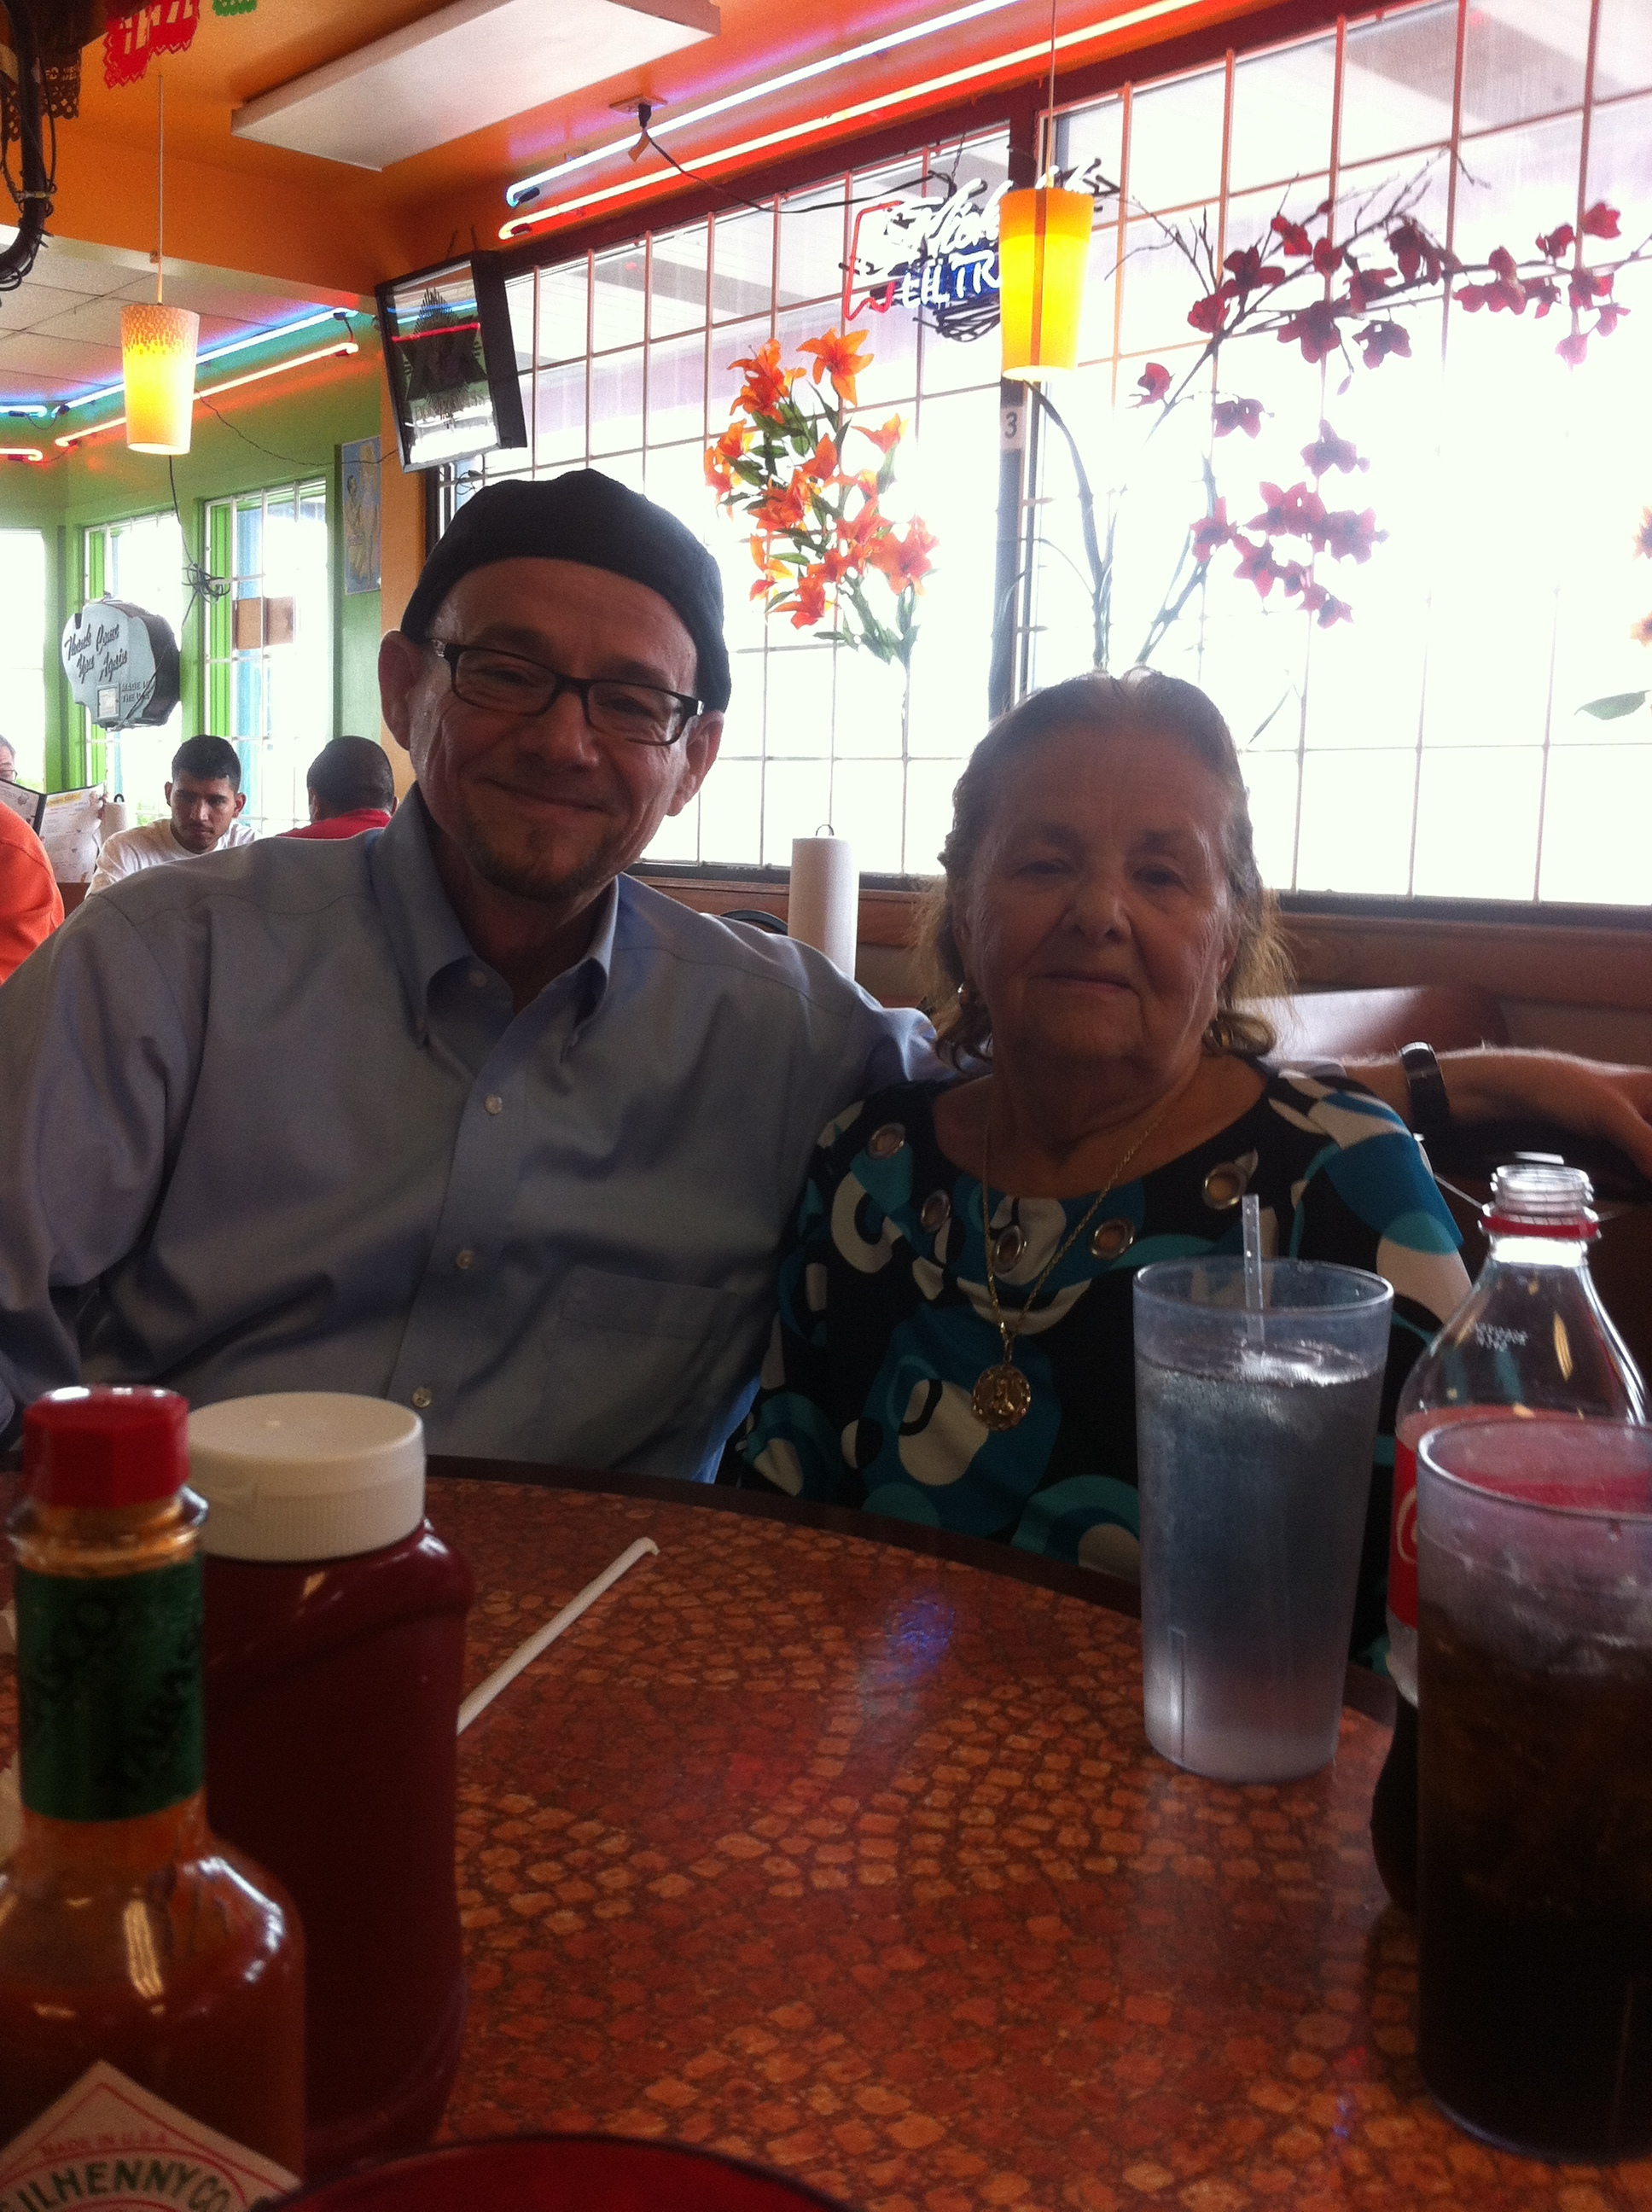 The author celebrating his mother's birthday at a Houston taqueria.